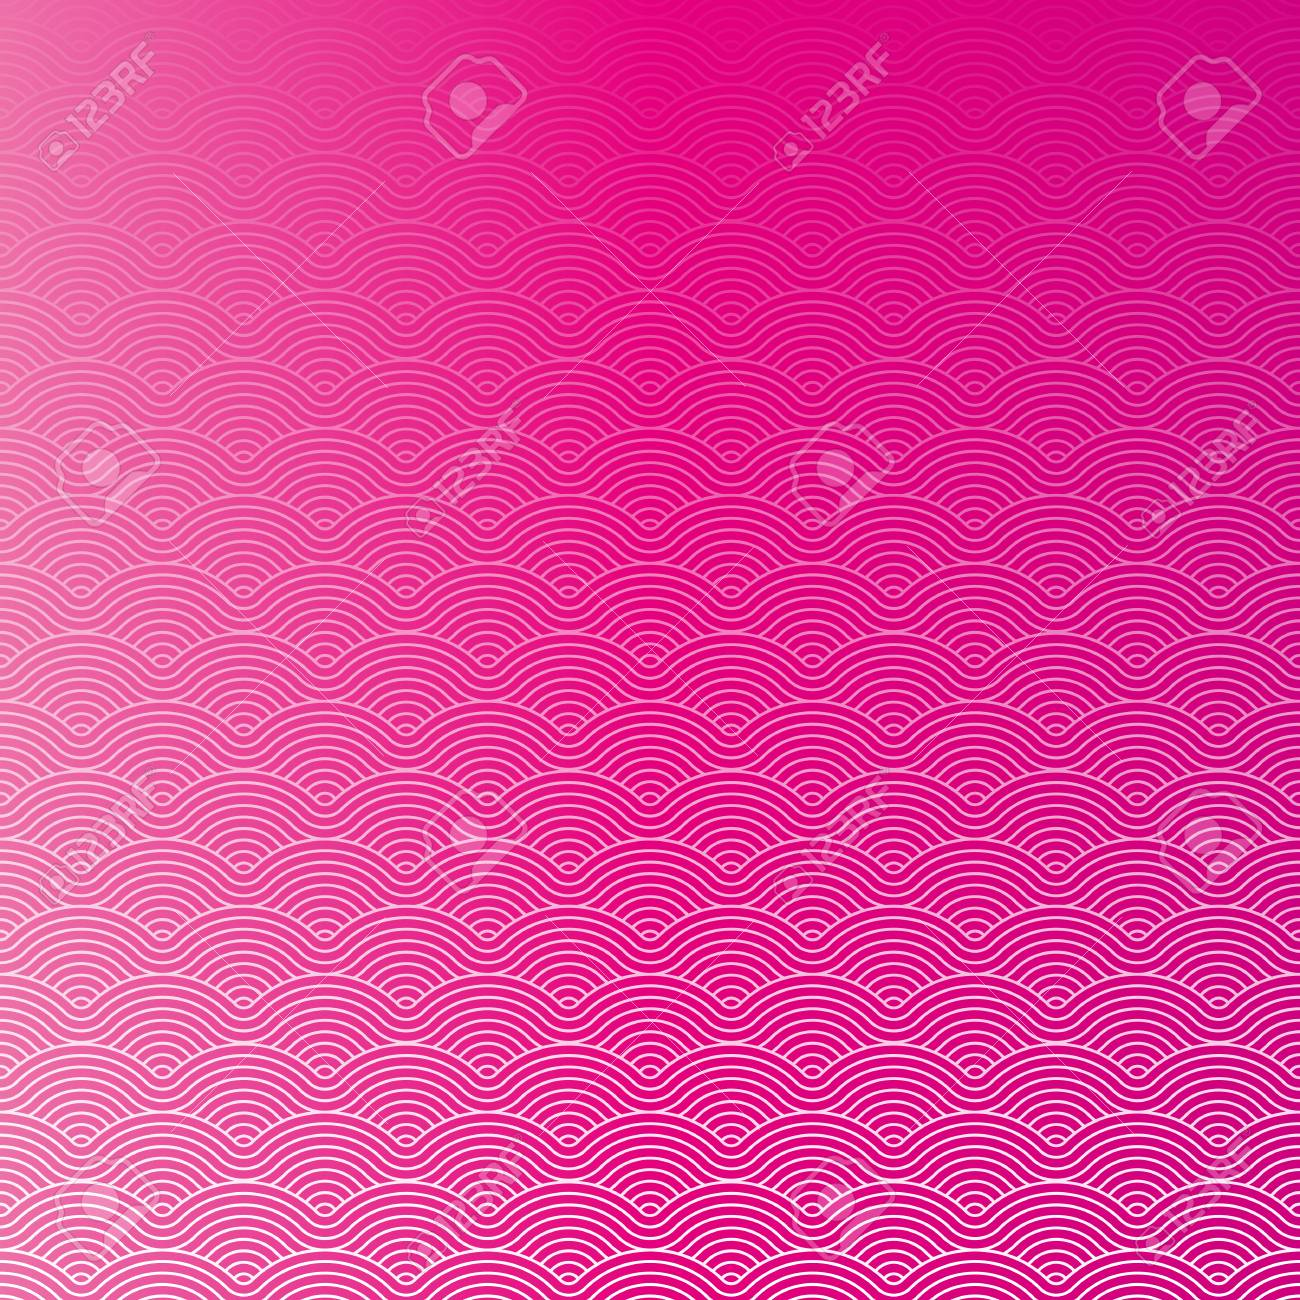 Colorful geometric repetitive vector curvy waves pattern texture background vector graphic illustration - 46085240